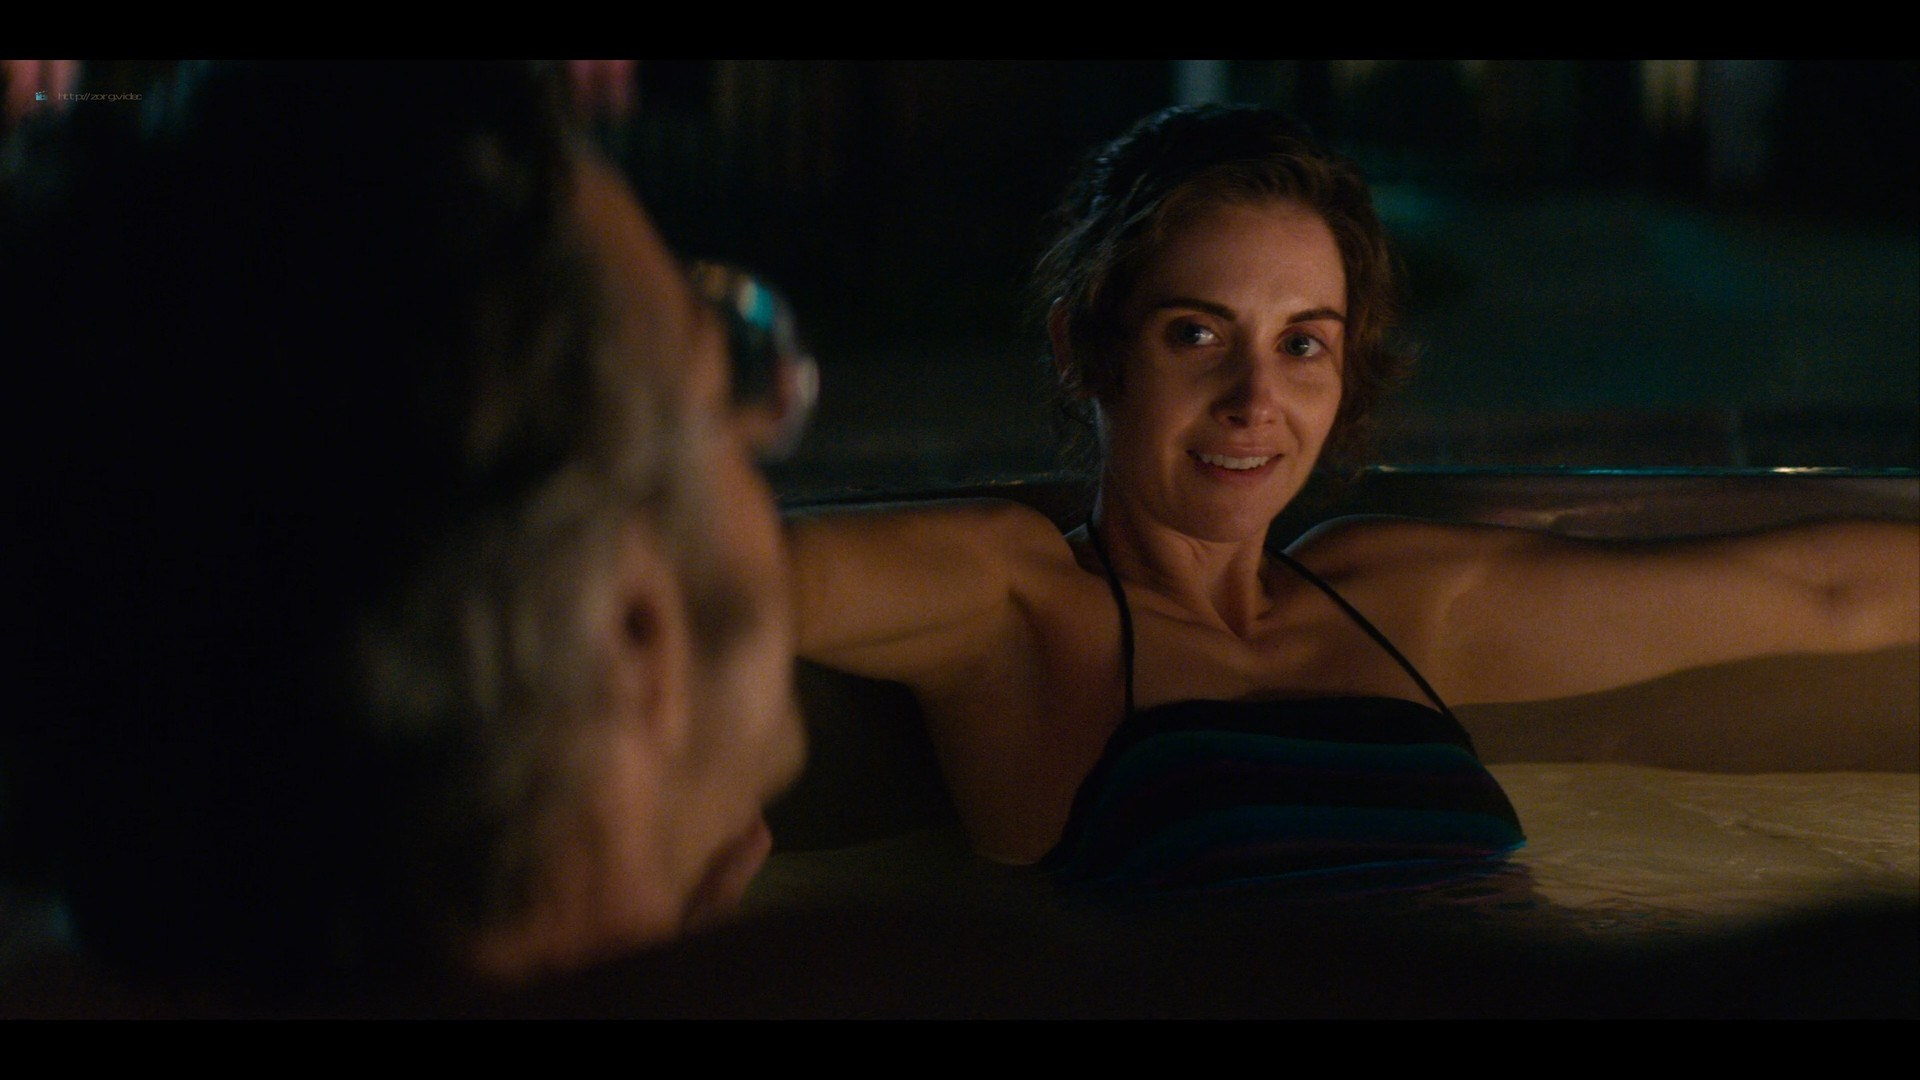 0710213435174_13_Alison-Brie-nude-topless-and-sexy-Glow-2019-S3-HD-1080p-Web-0003.jpg